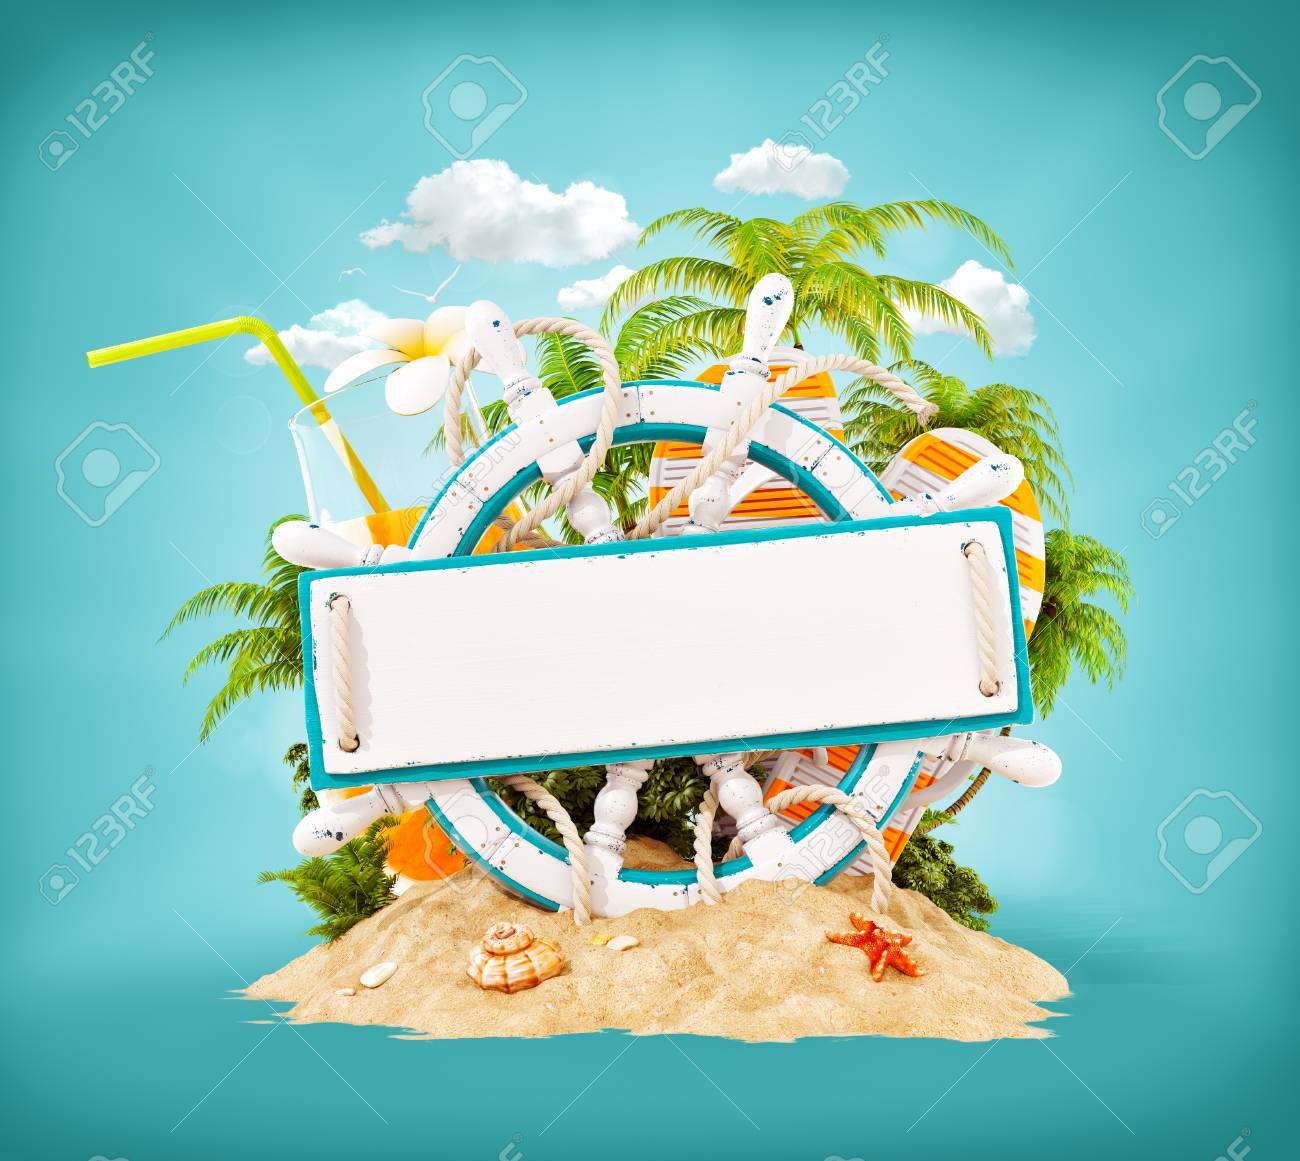 Wooden helm with a blank wooden plank for text on sand. Unusual 3D illustration. Travel and vacation concept. - 96347670